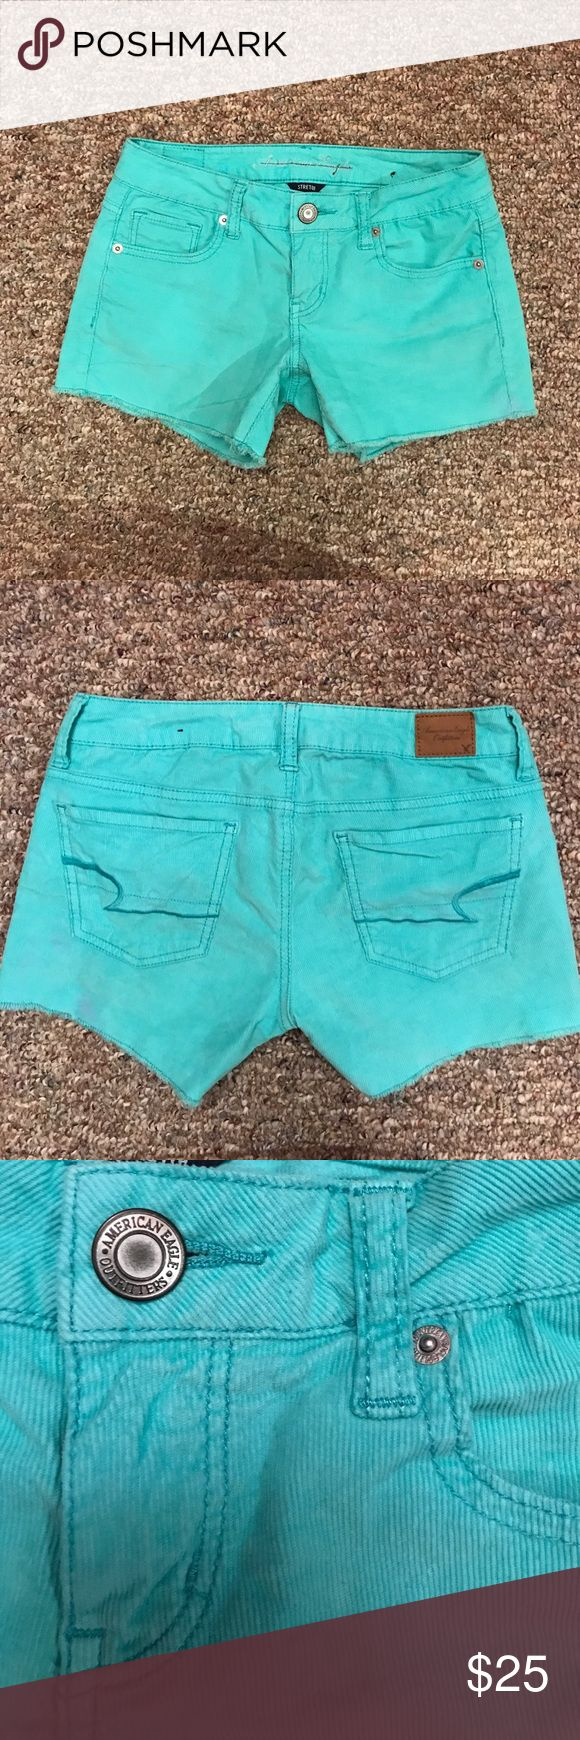 American Eagle Stretch Ribbed Aqua Shorts 0 These are too small for me as you can see in the pictures. 😪 They are adorable though, in perfect condition, great color and love the stretch.  The color is like mint green/aqua-ish. More on the mint green. American Eagle Outfitters Shorts